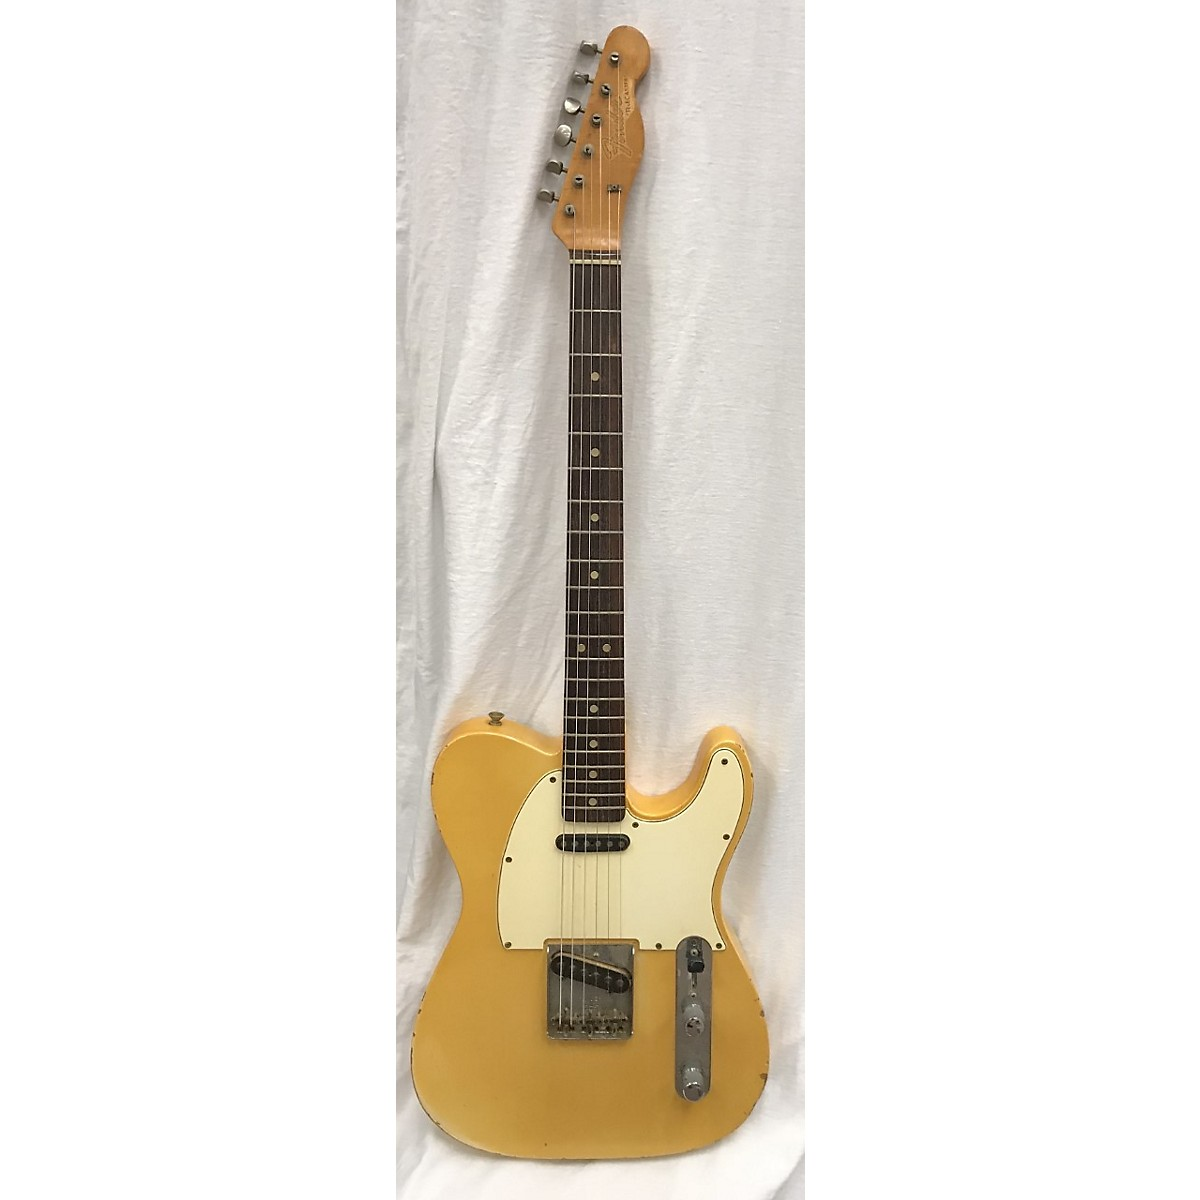 Fender 1967 Telecaster Blonde Solid Body Electric Guitar